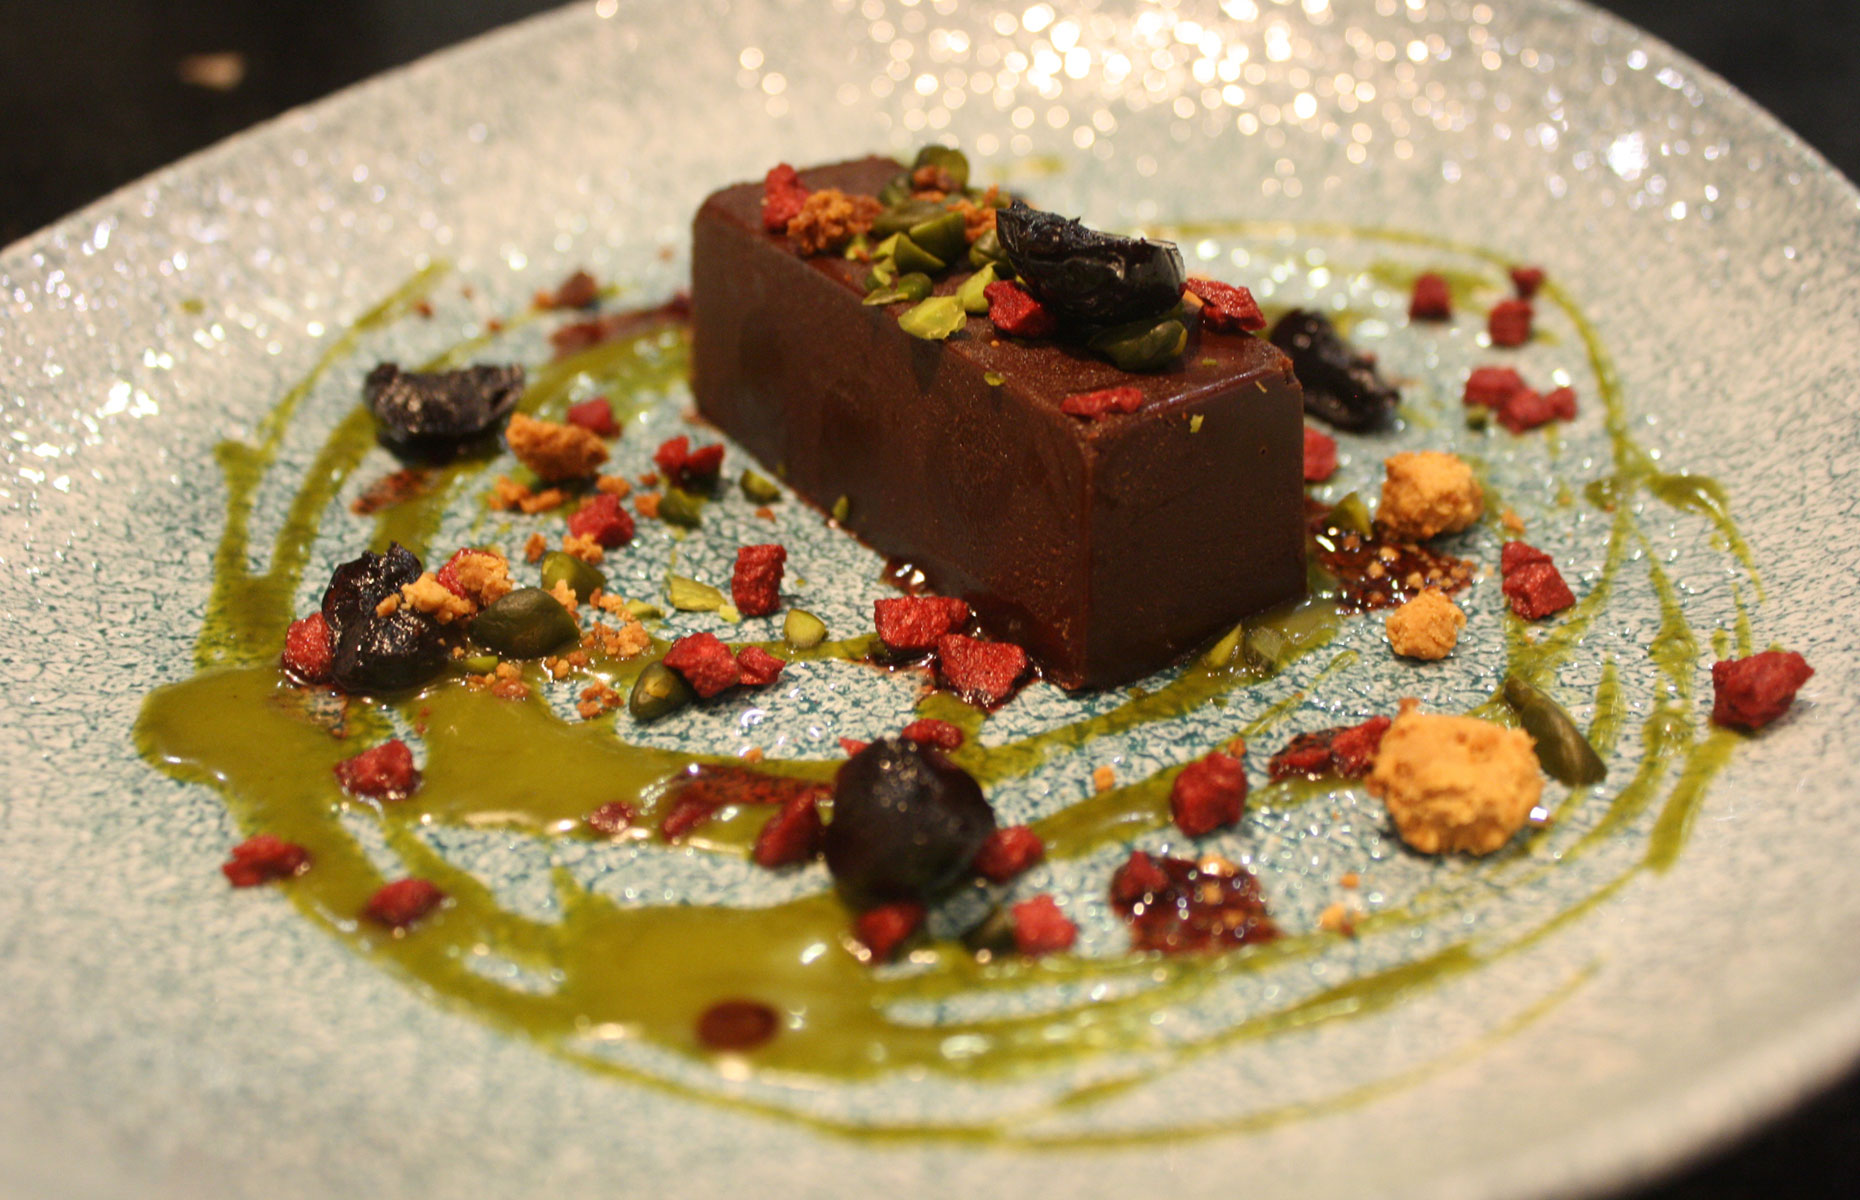 Chocolate cake at the Bicester Hotel and Spa